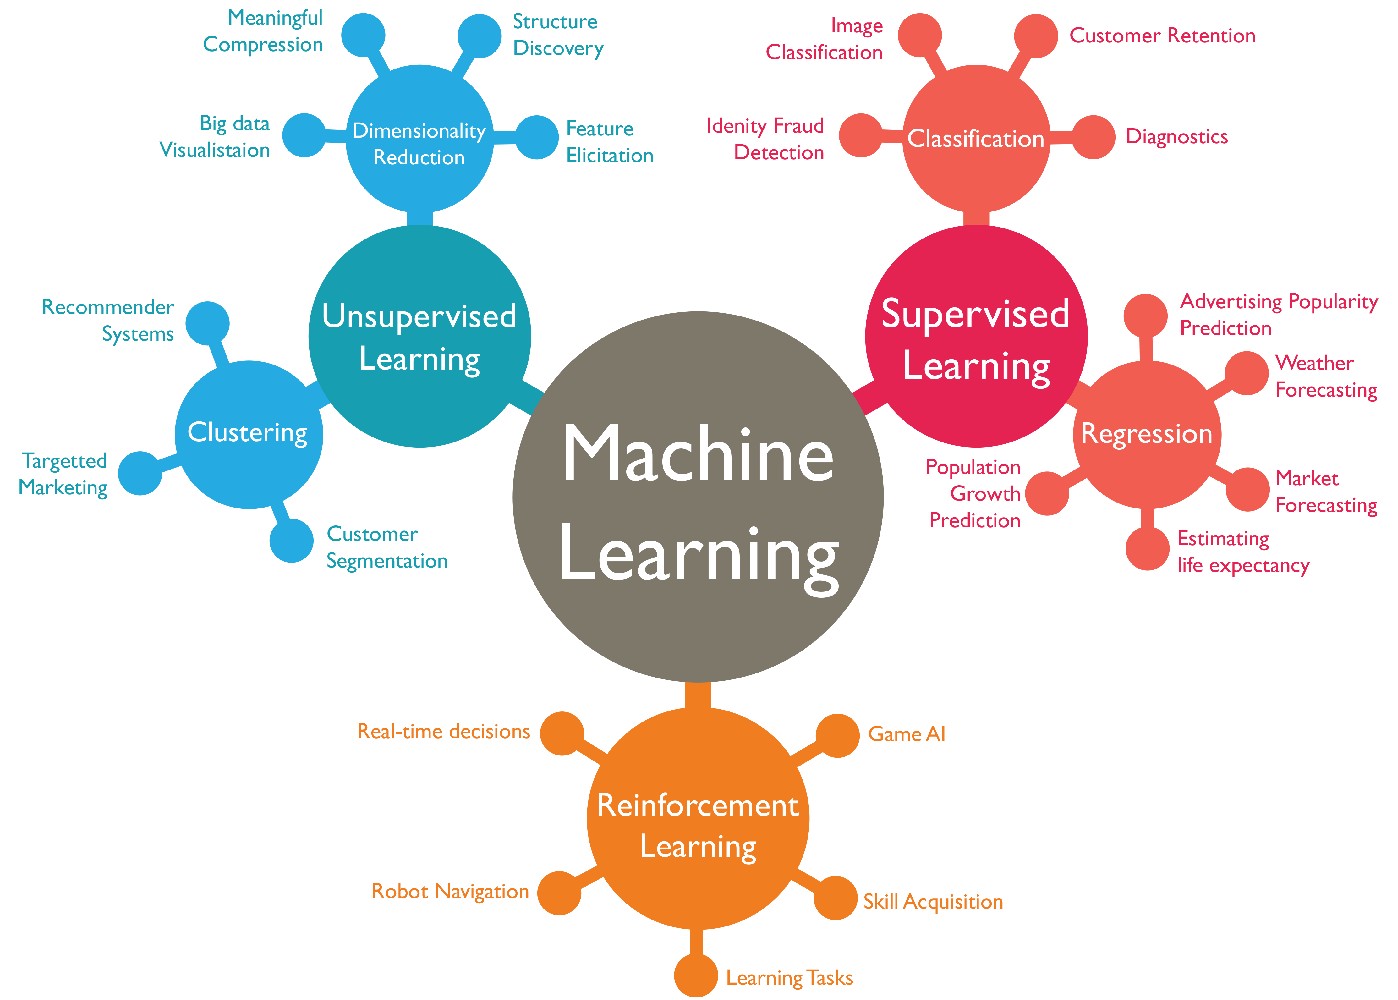 Mind map representing machine learning and related concepts